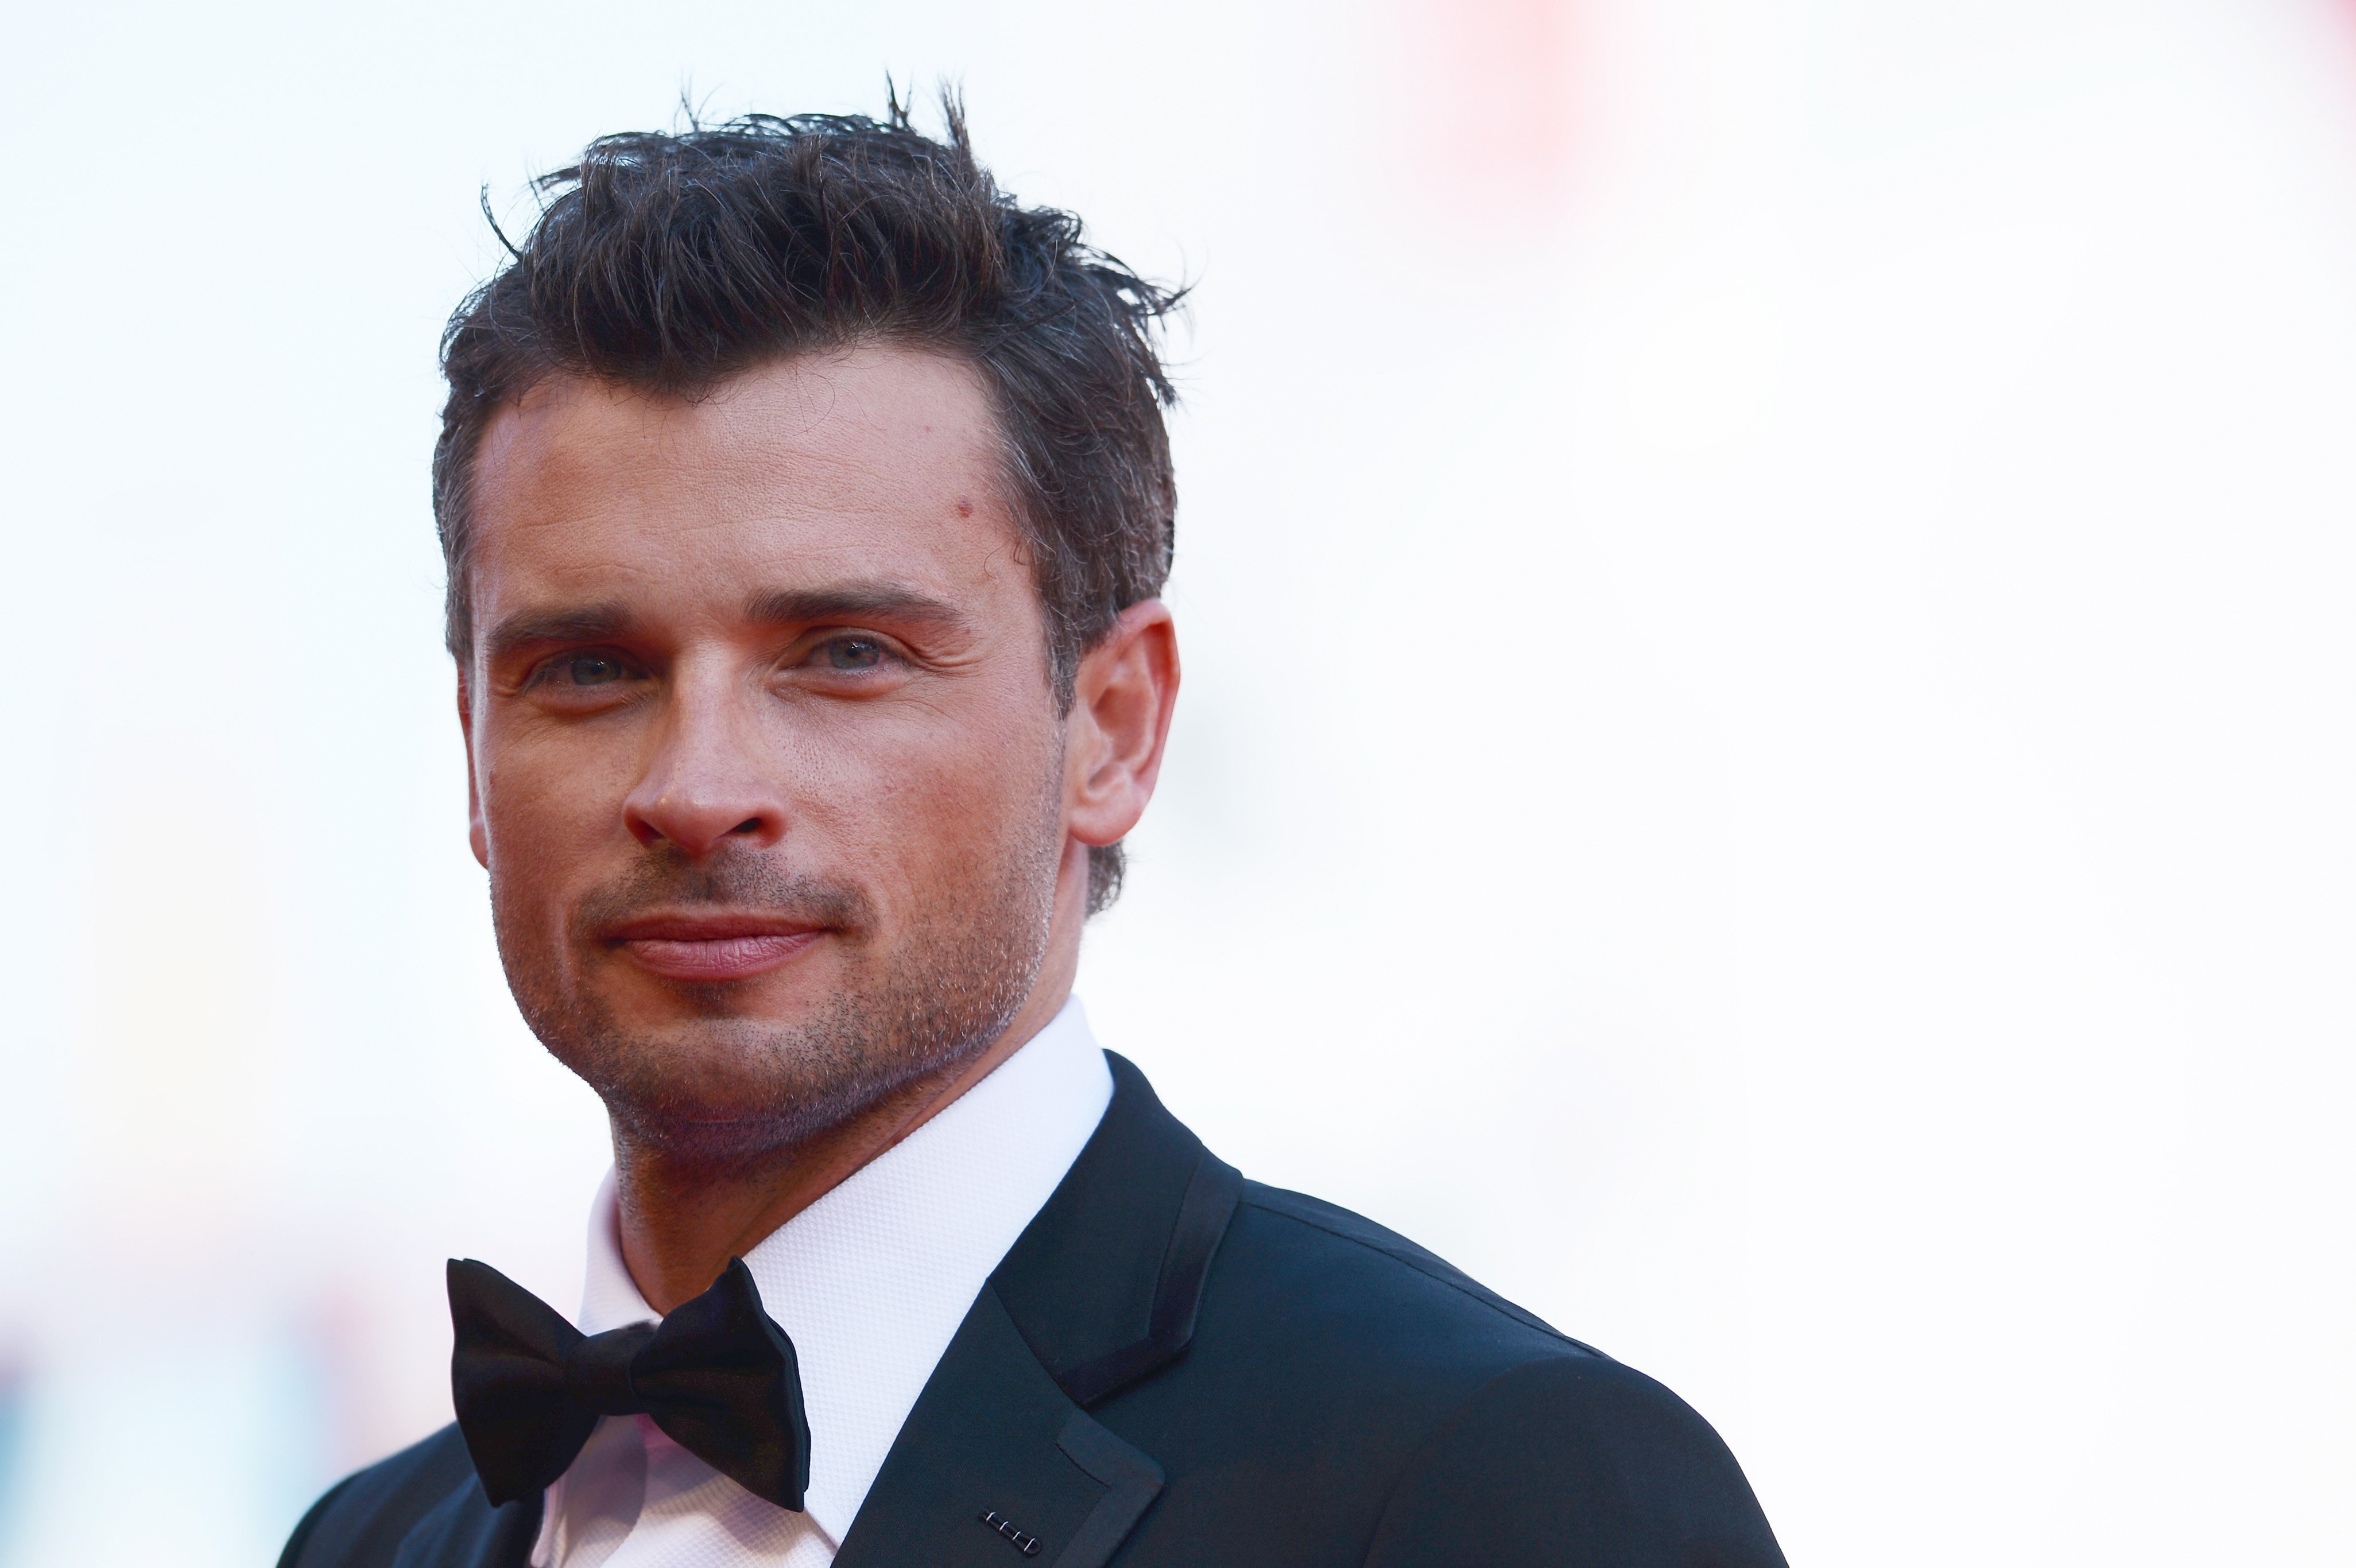 Tom Welling to reprise 'Smallville' role for CW's 'Arrowverse' crossovers